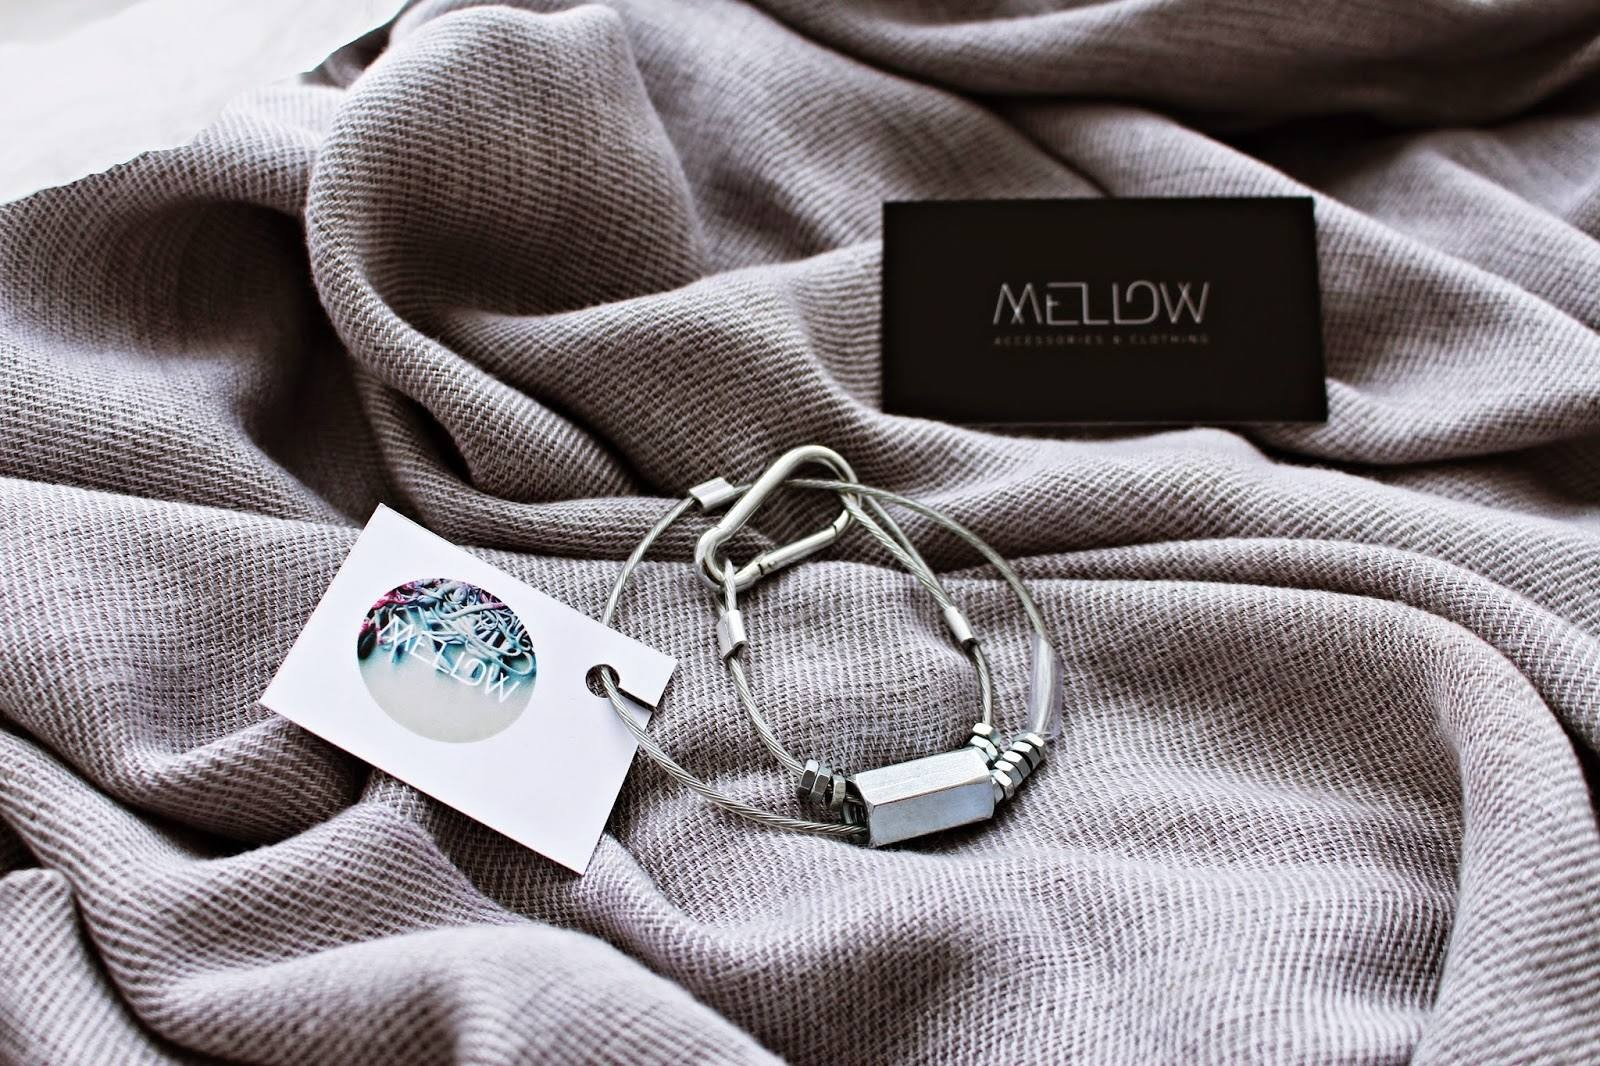 New in: Mellow.